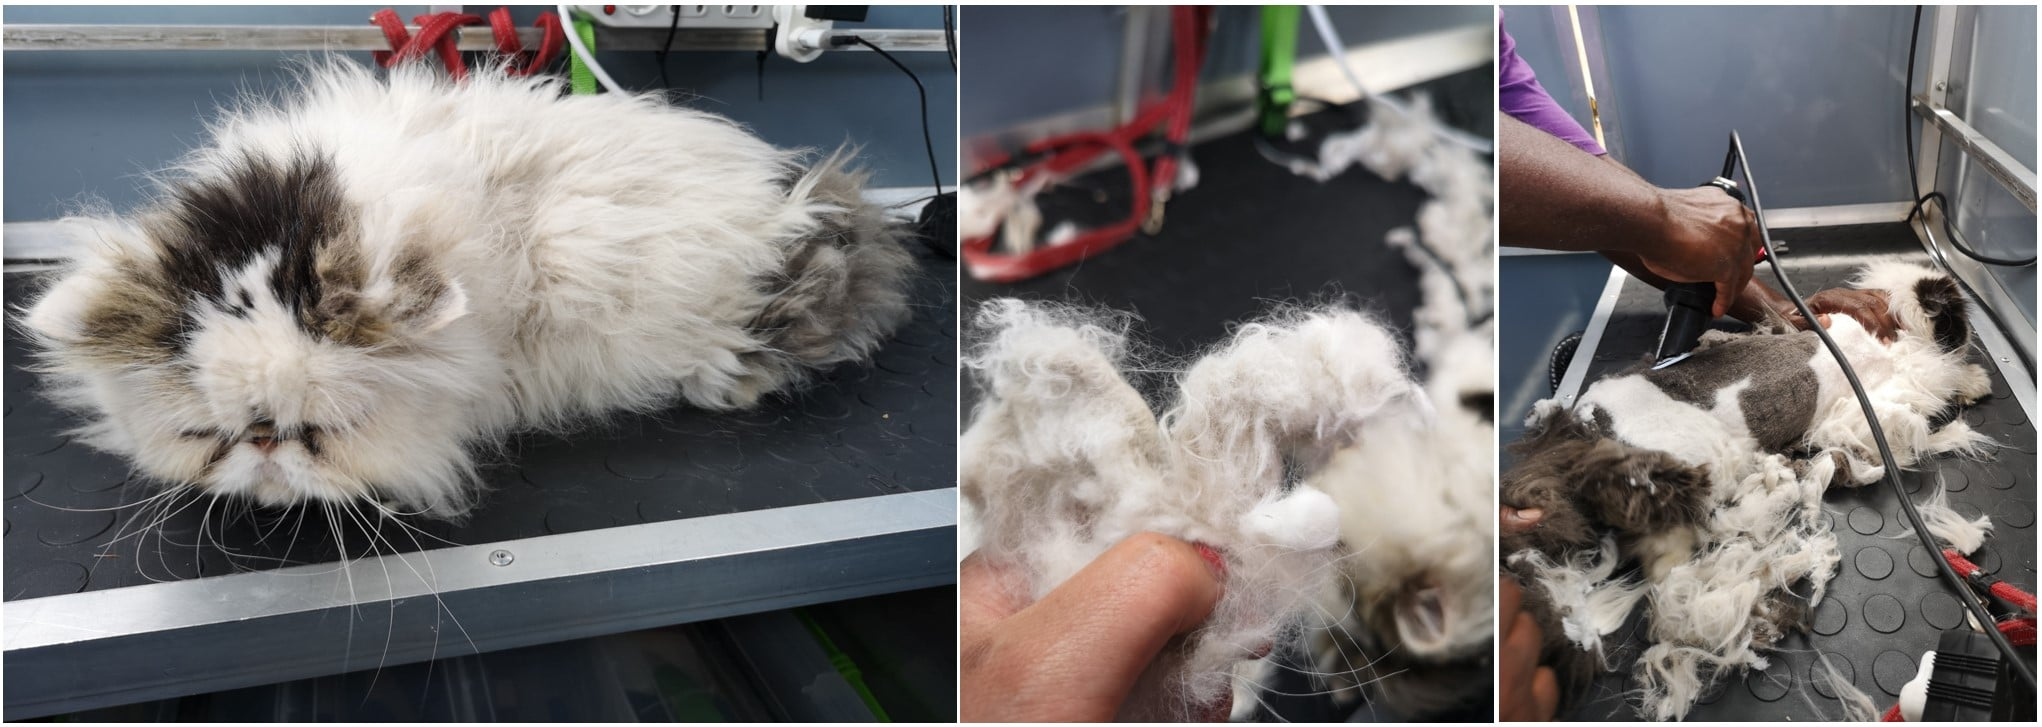 Matted cat being shaved